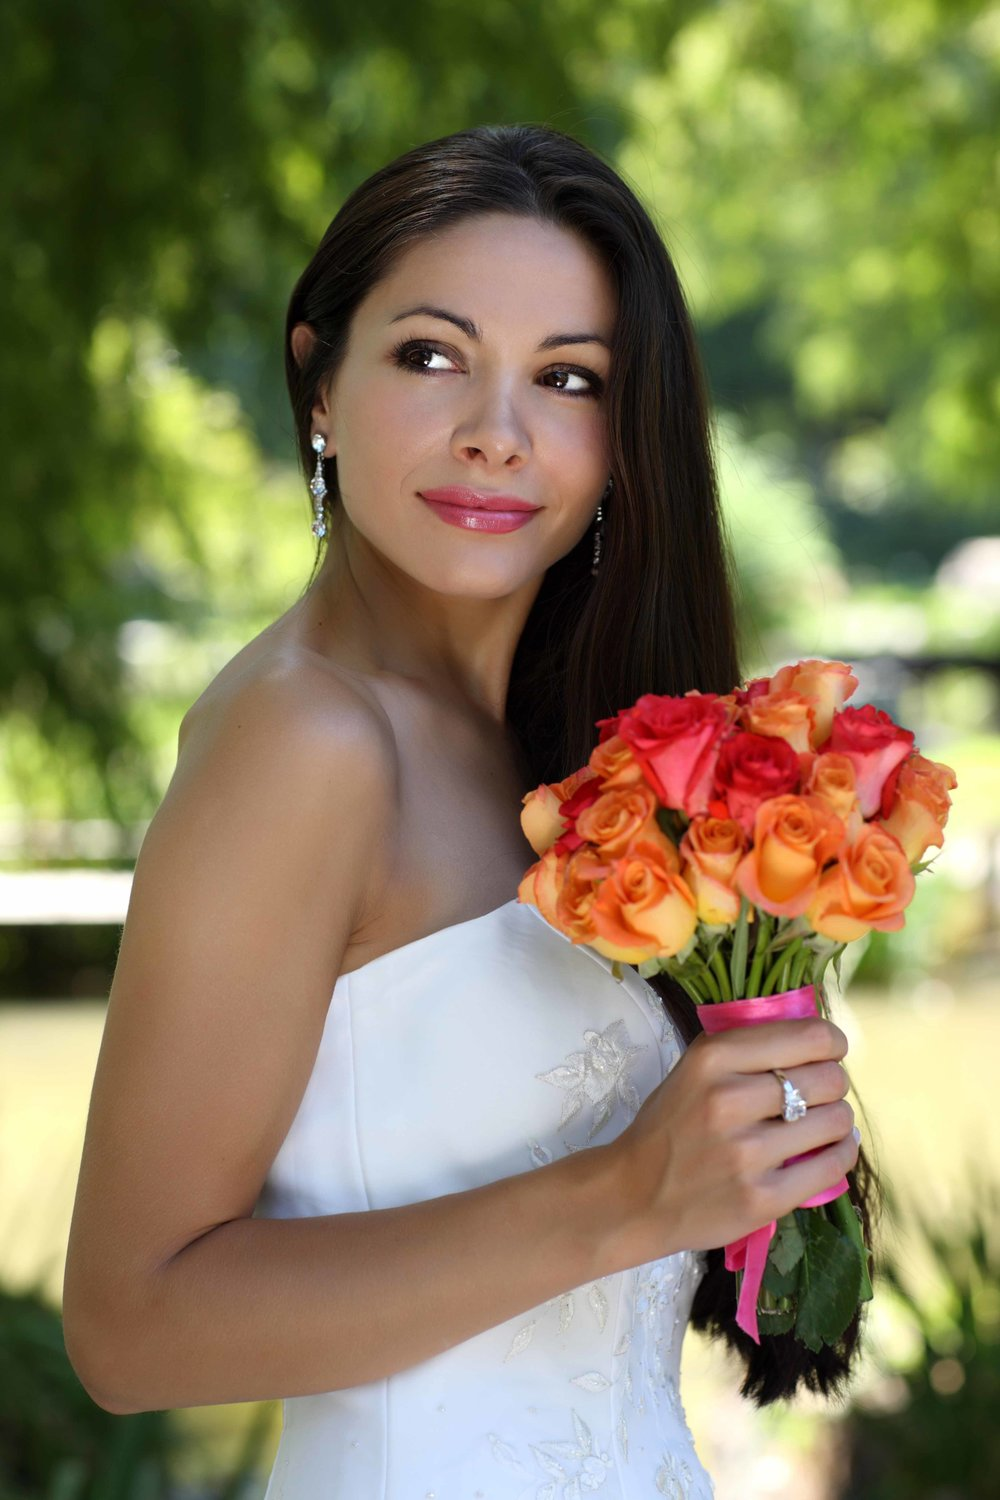 It's fast, easy, and free to deliver your bouquet for flower preservation from the Milwaukee, WI area. Get started today! Call 701-400-6162.